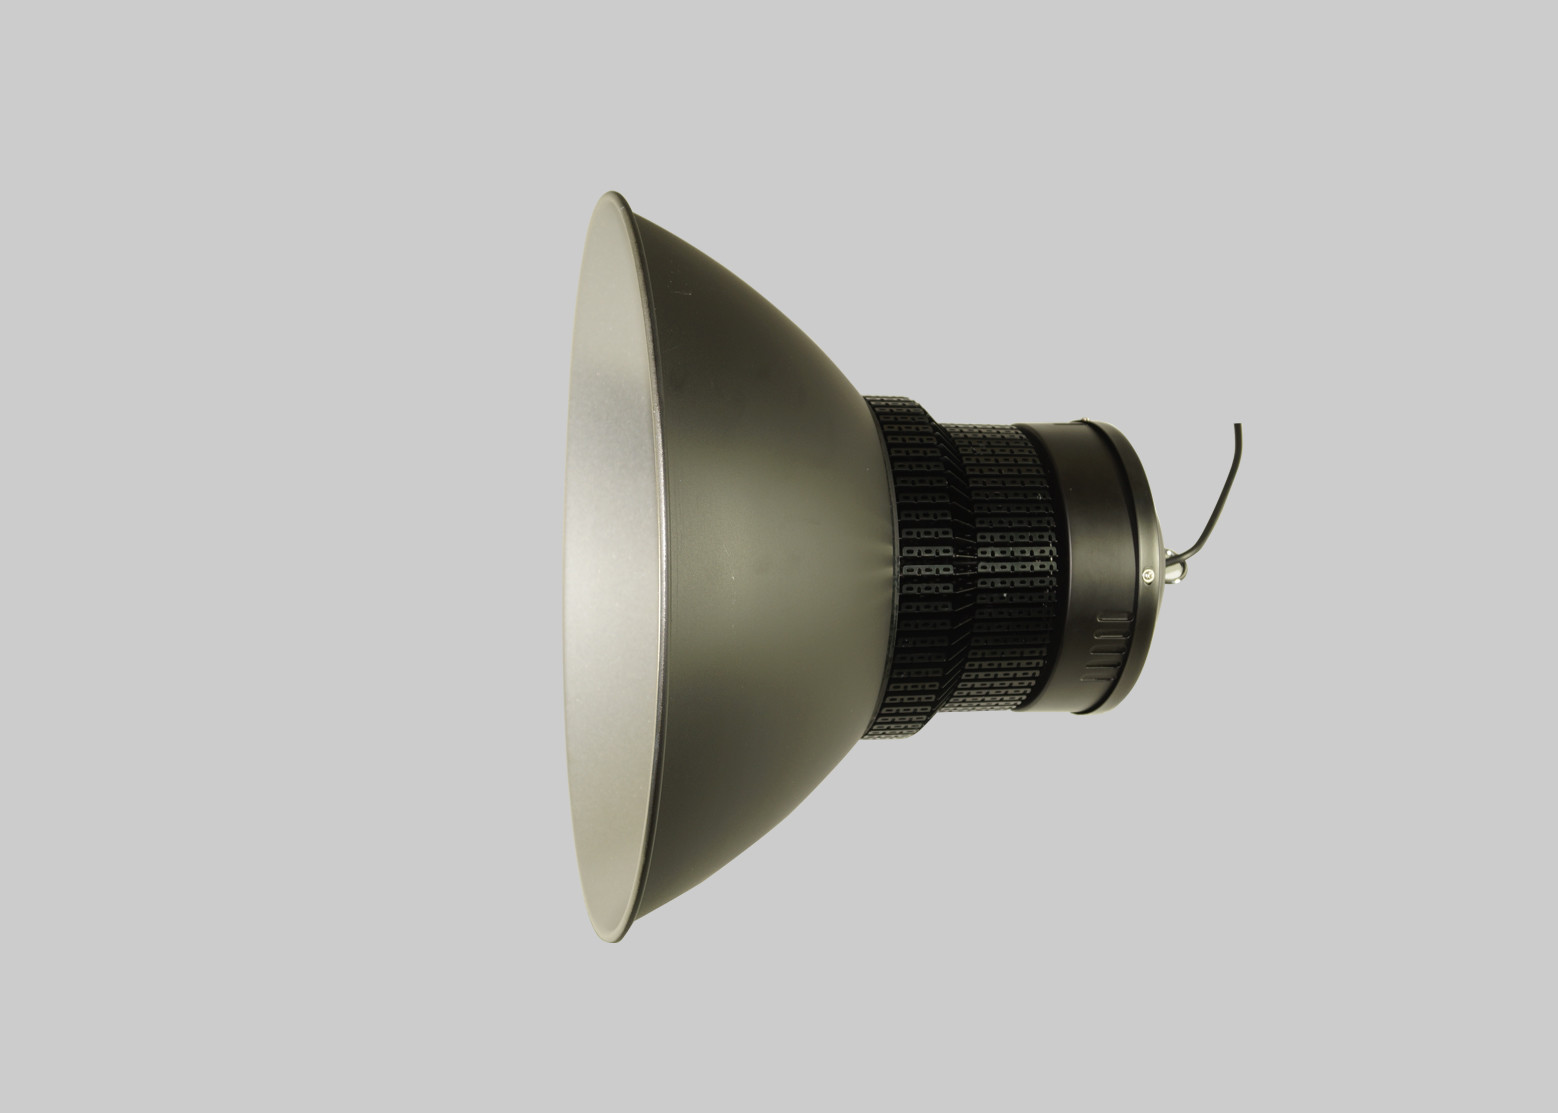 120W High Brightness LED High Bay Lights IP54 Waterproof CE SAA CB Approved